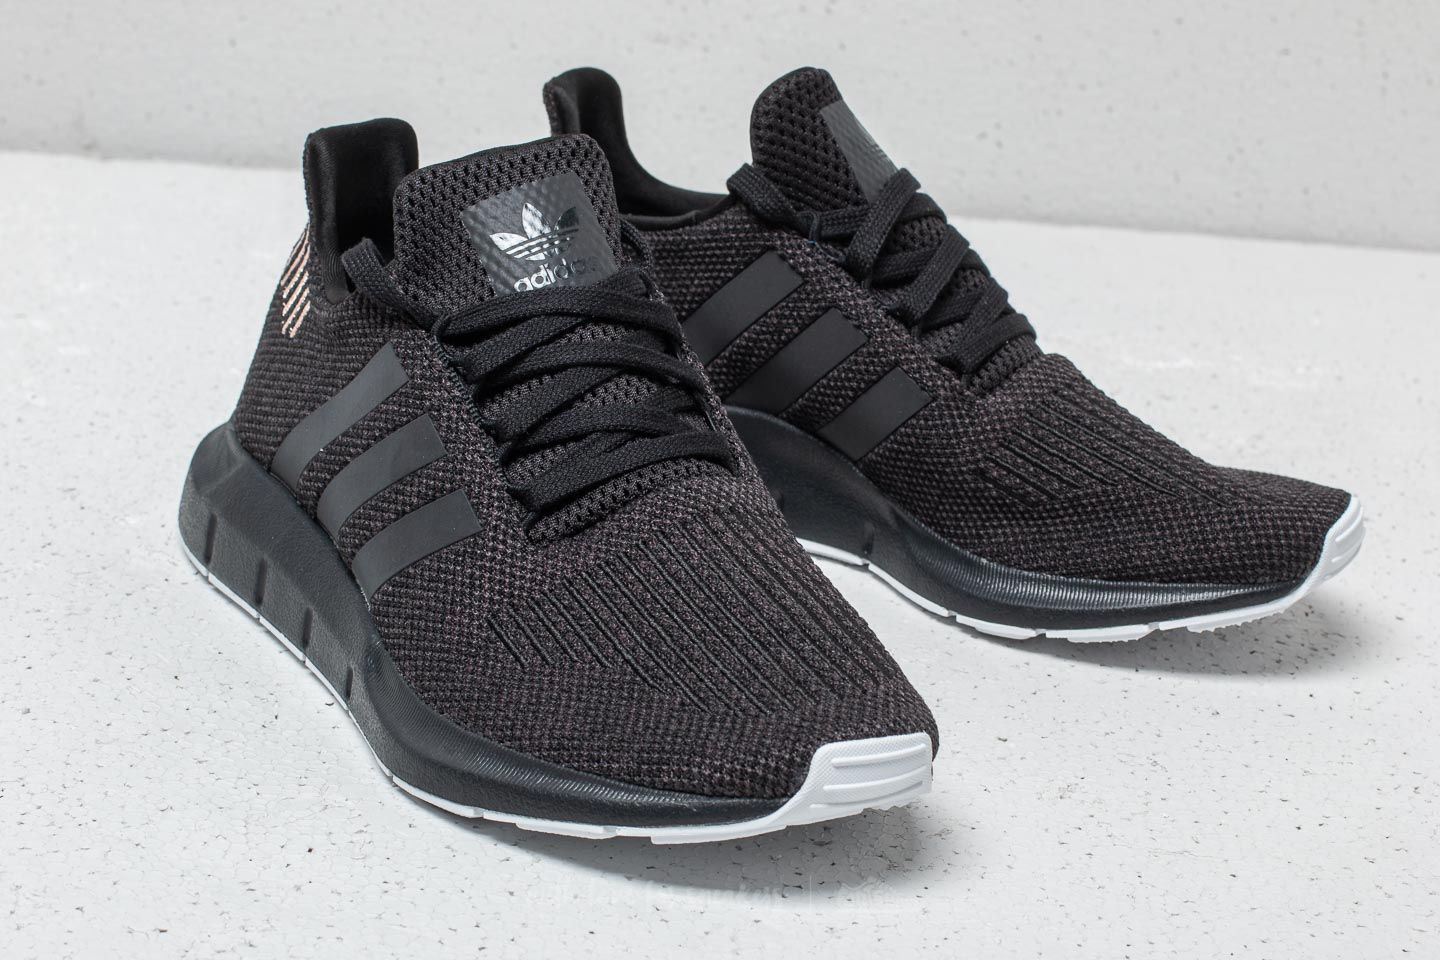 quality buy online top quality adidas Swift Run W Core Black/ Carbon/ Ftw White | Footshop